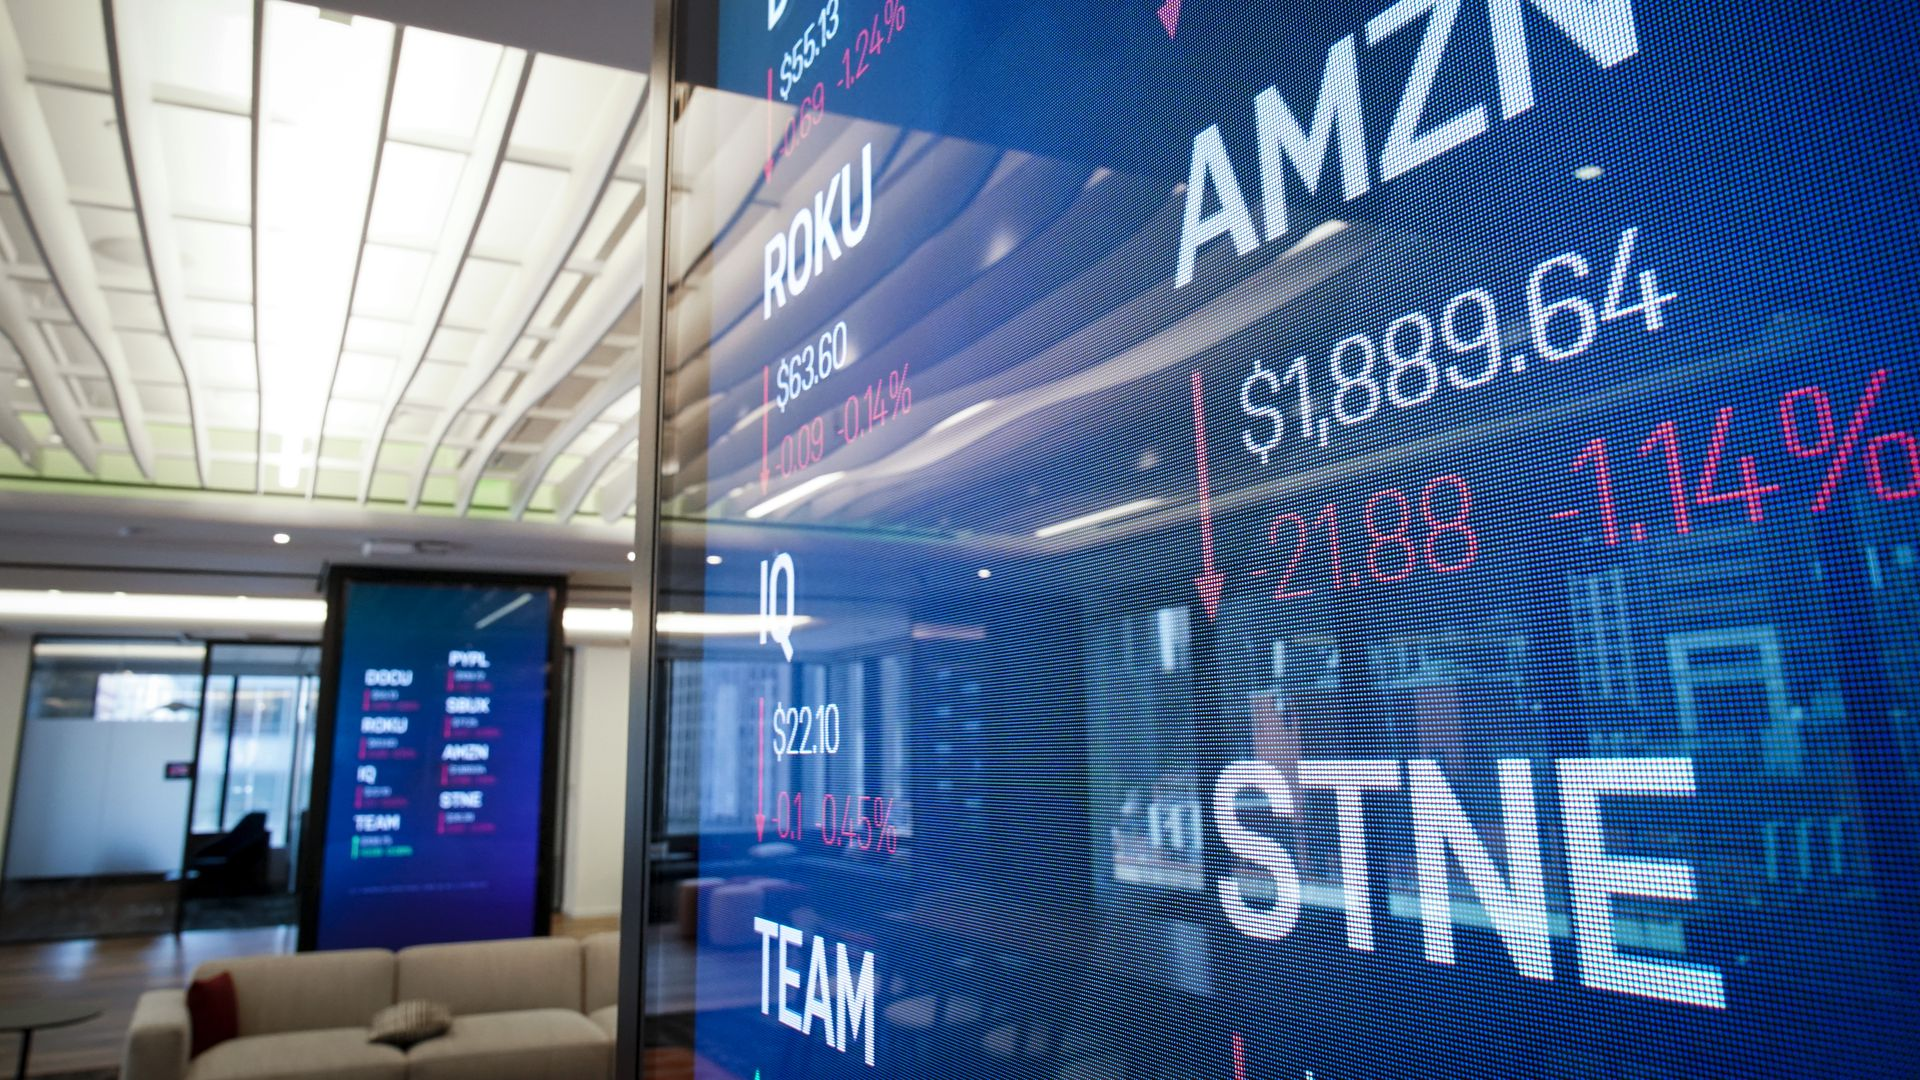 MAY 2: Stock information about Amazon is displayed on a monitor inside Nasdaq's new 'Client Experience Center' at their office in Times Square.